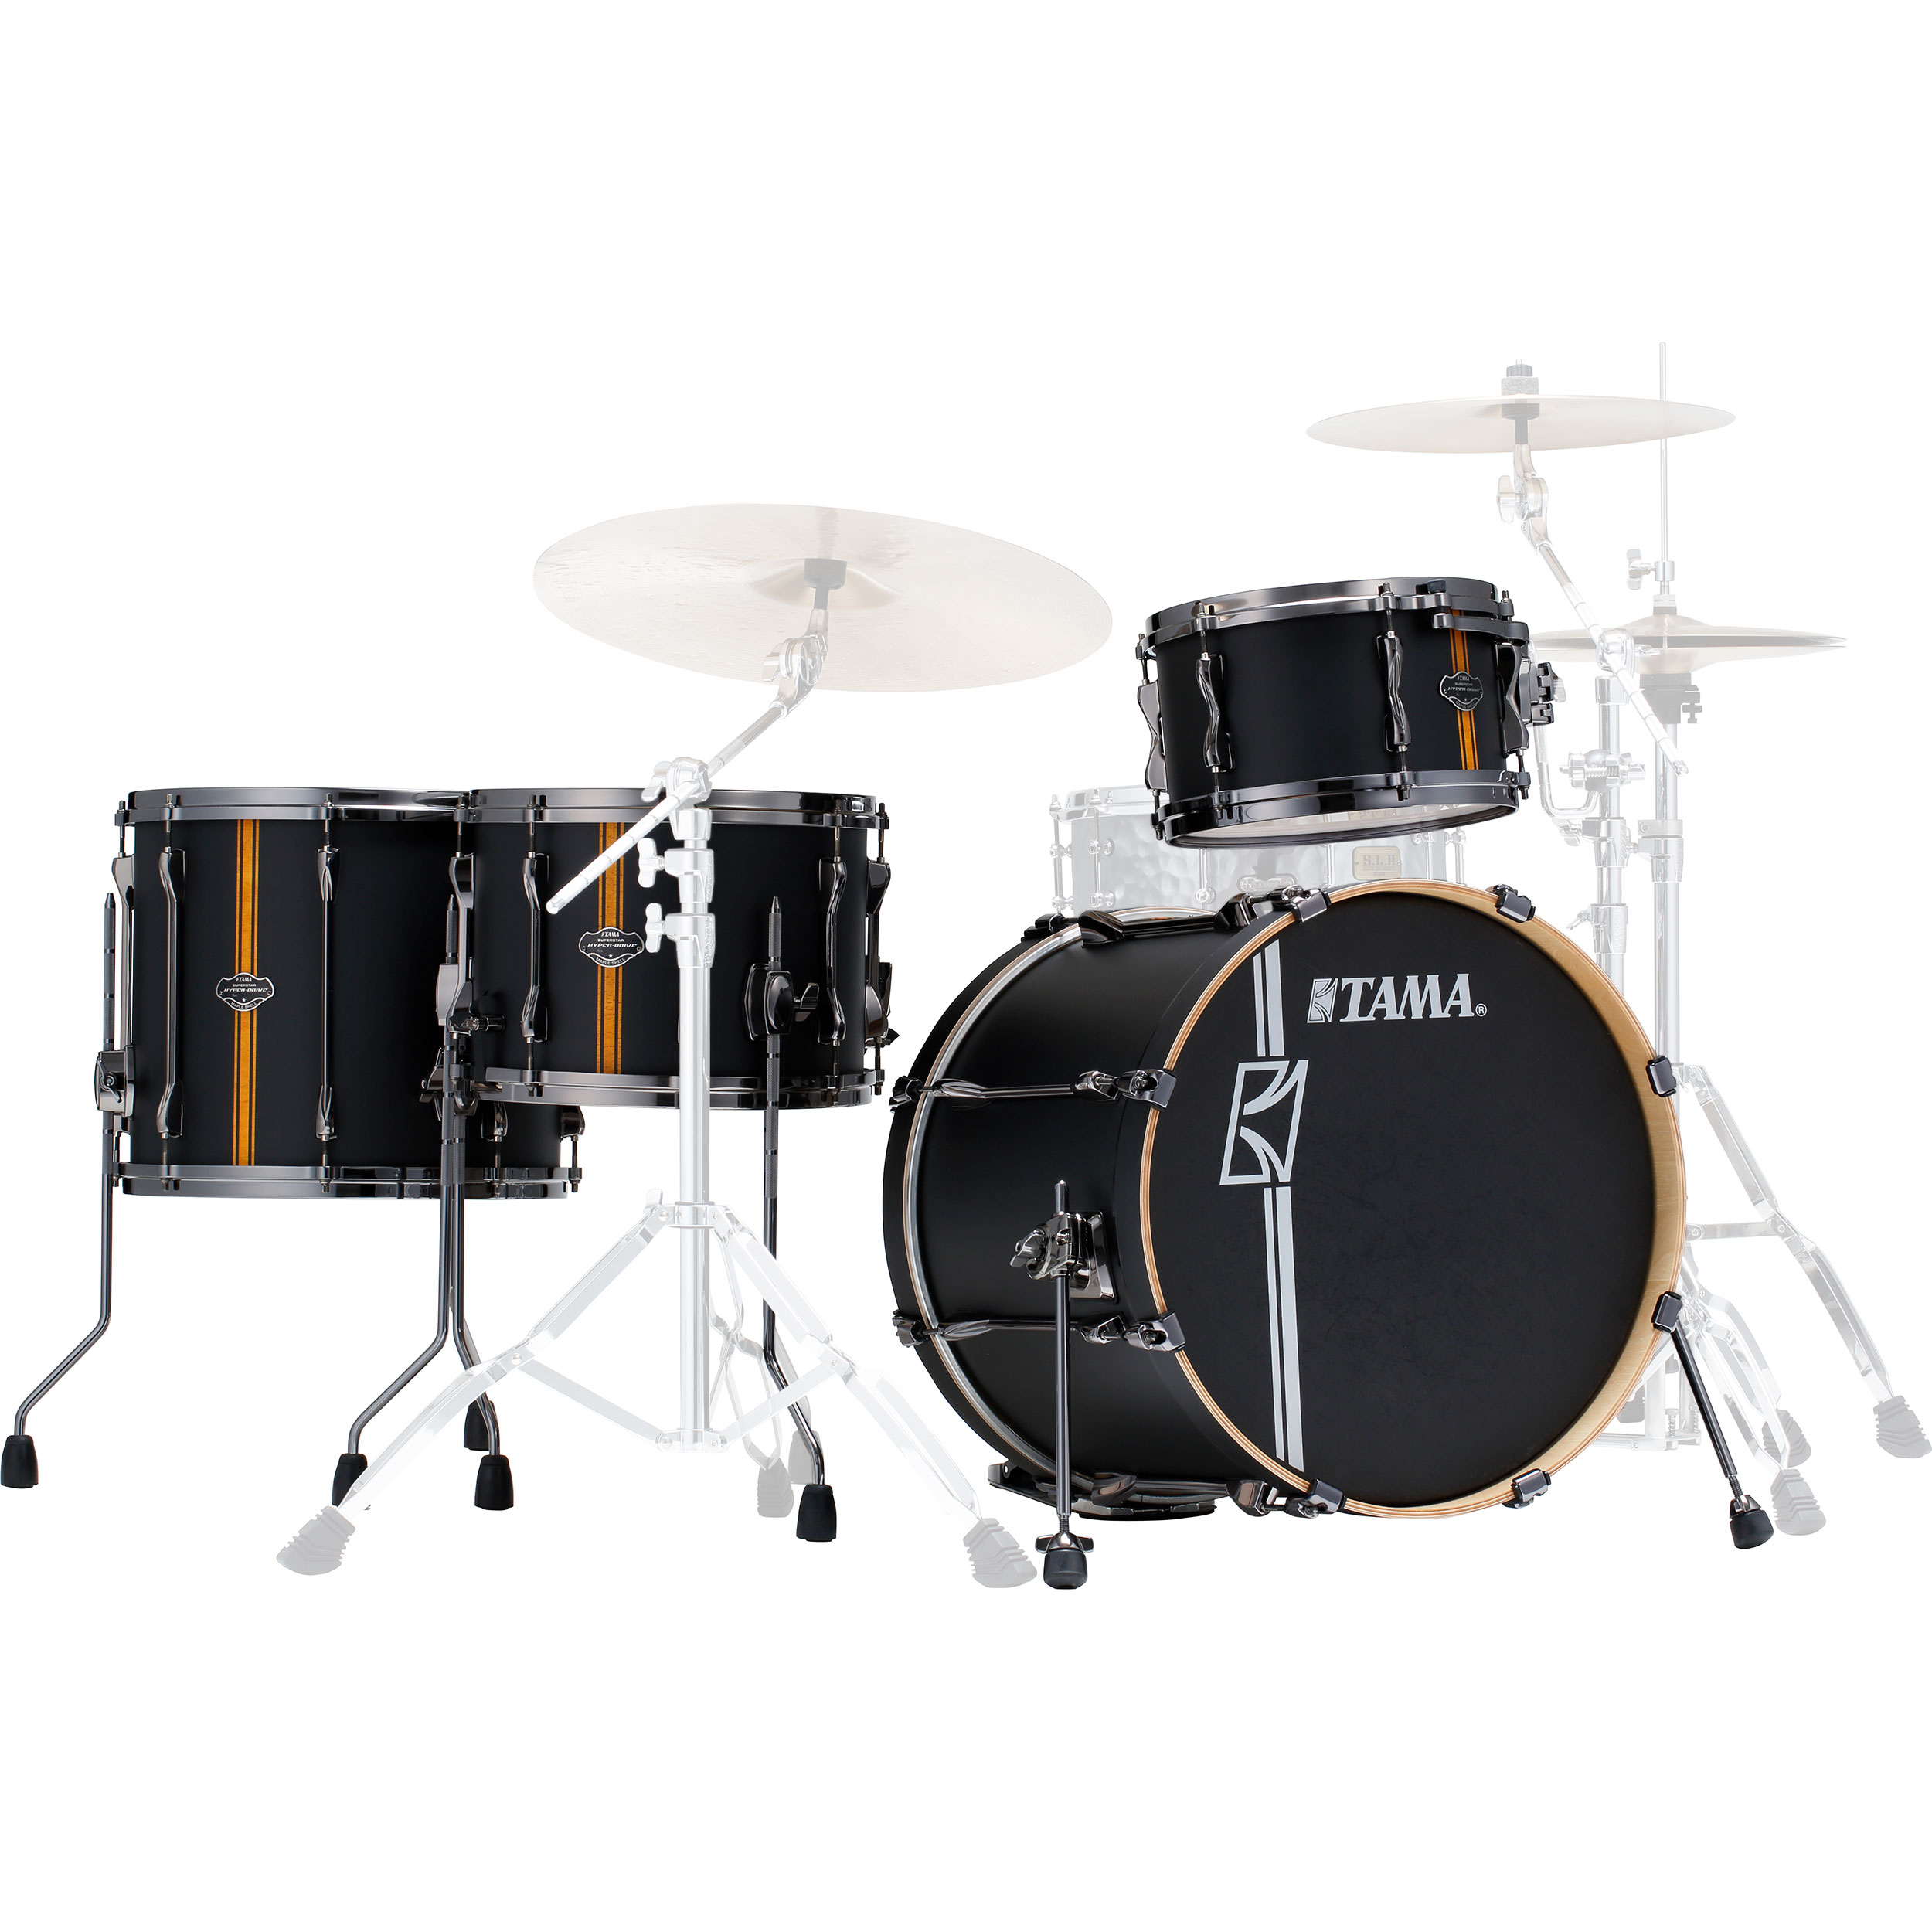 "Tama Superstar Hyper-Drive Duo 4-Piece Drum Set Shell Pack (20"" Bass, 12/16"" Toms, 14"" Duo Snare)"